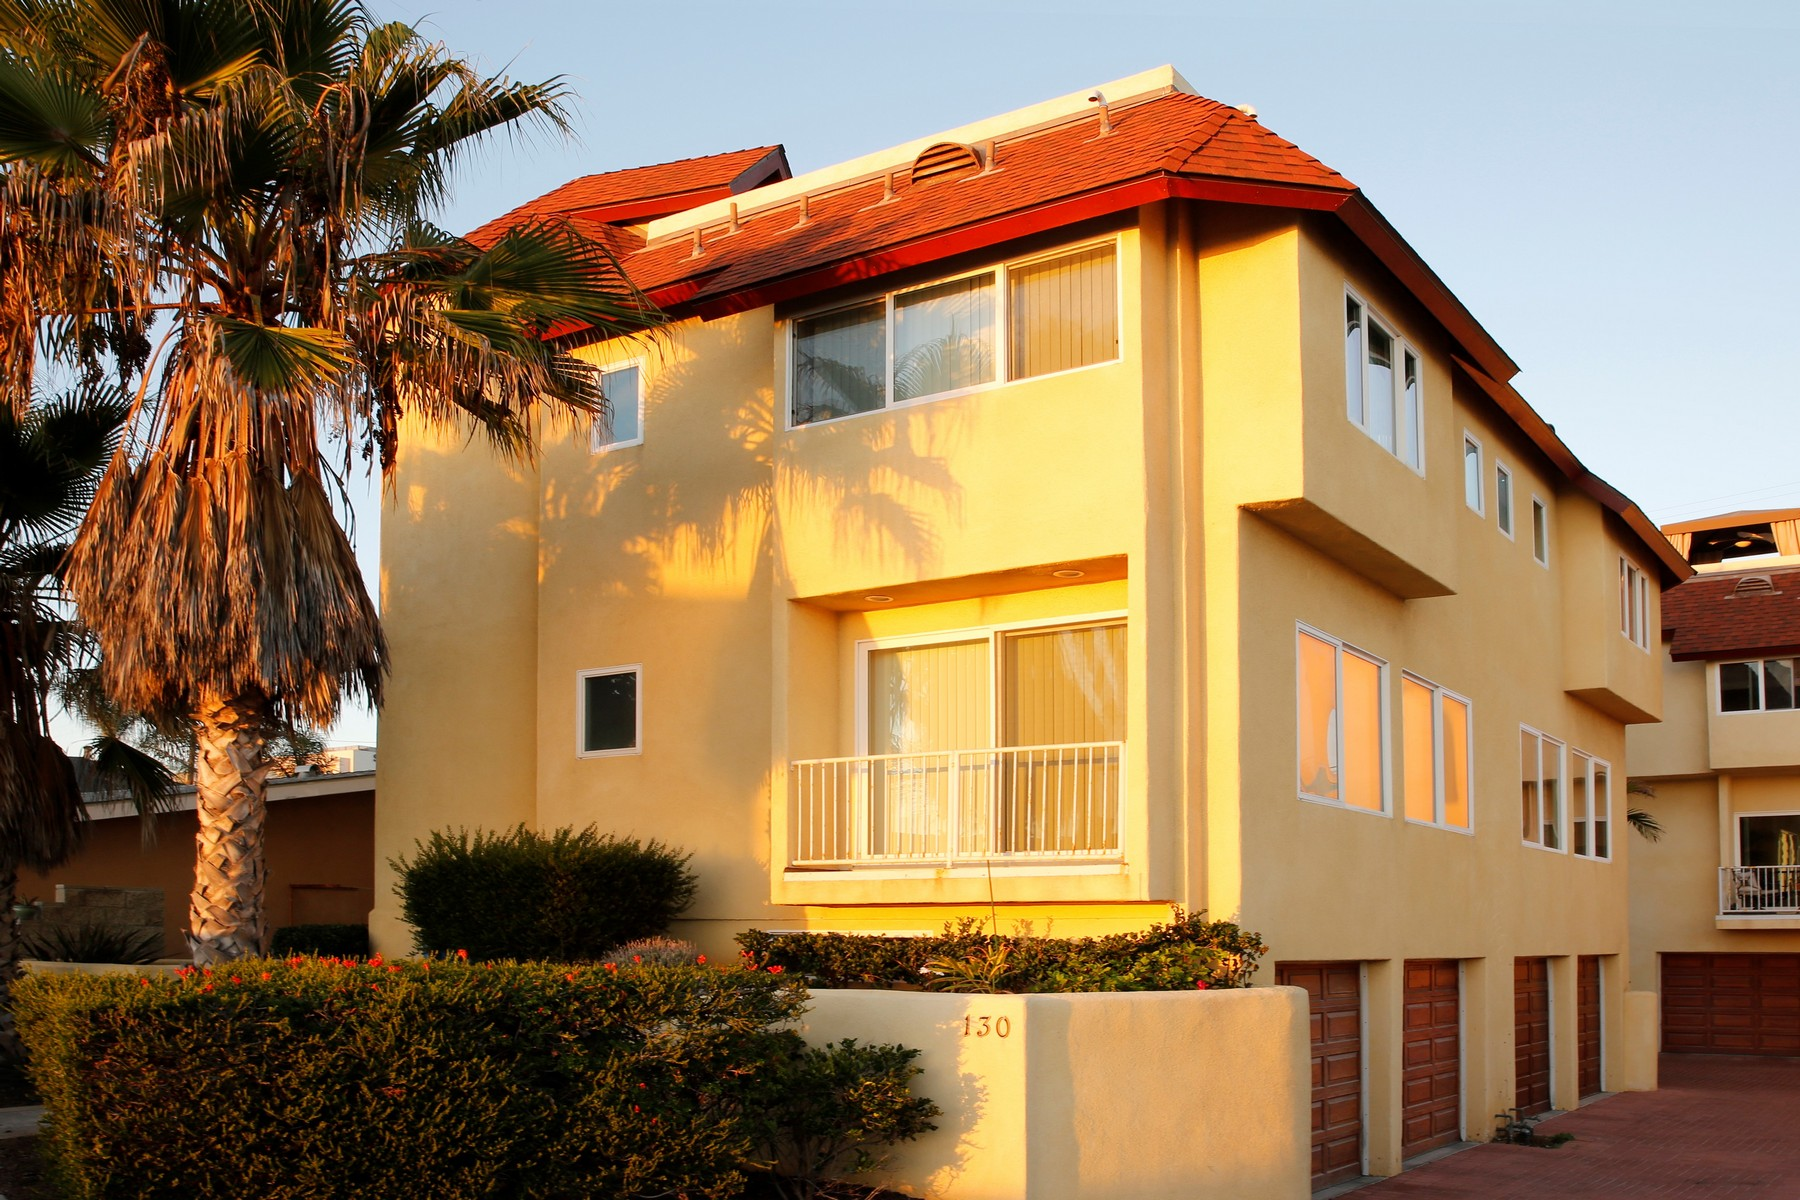 Condominium for Sale at 130 S Pacific Street A 130 South Pacific Street A Oceanside, California, 92054 United States